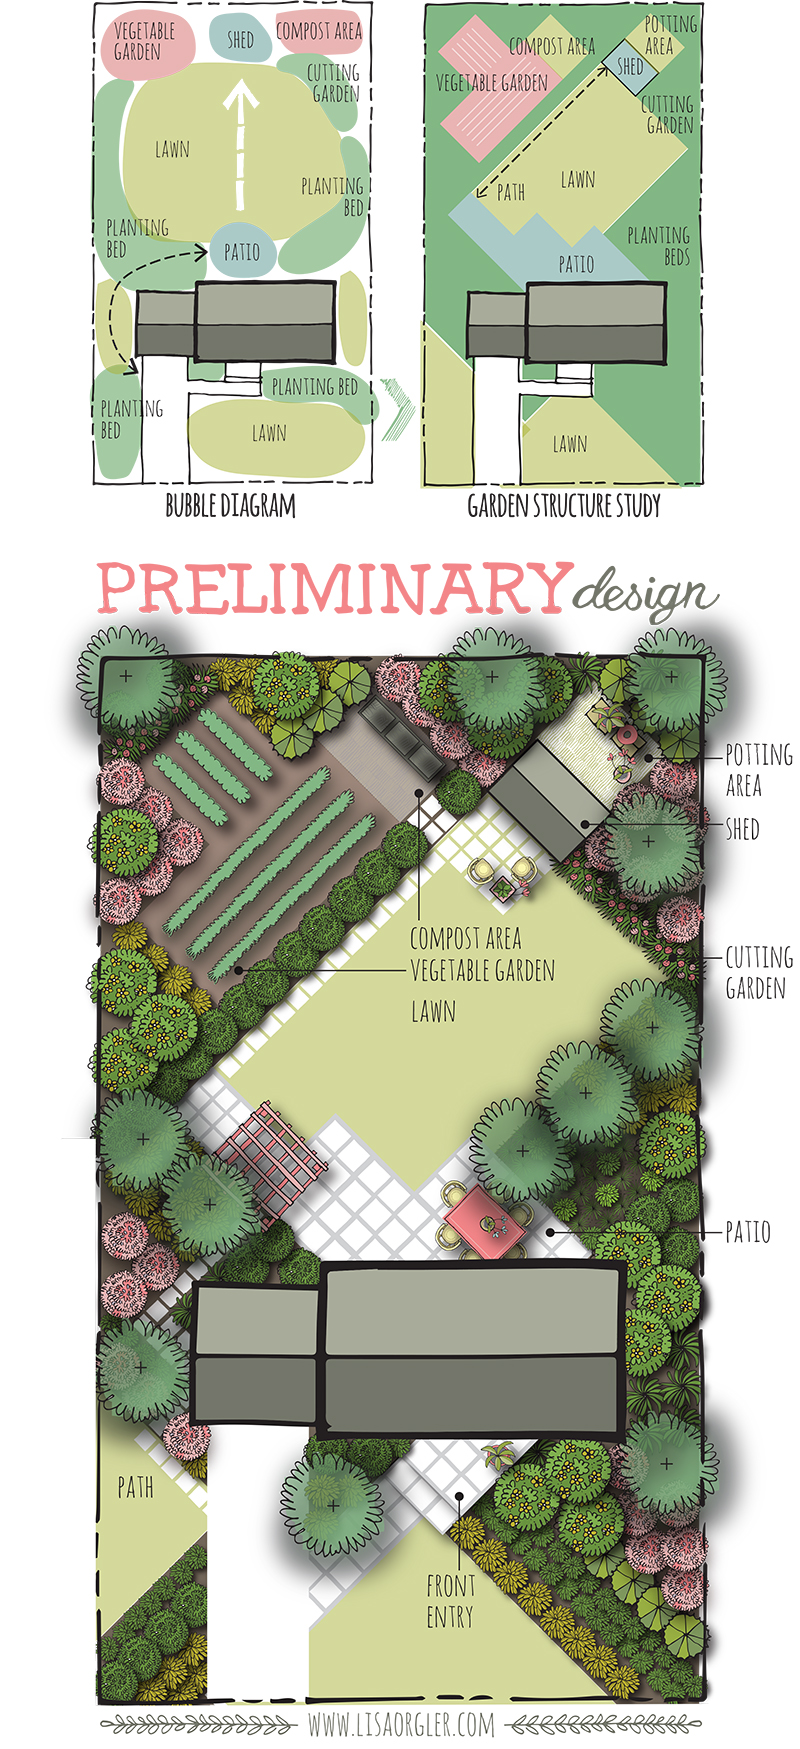 master plan architecture bubble diagram adp molecule labeled designing your garden the preliminary design it is this final that would identify plants include a plant schedule plus show any necessary elevations and sections for construction